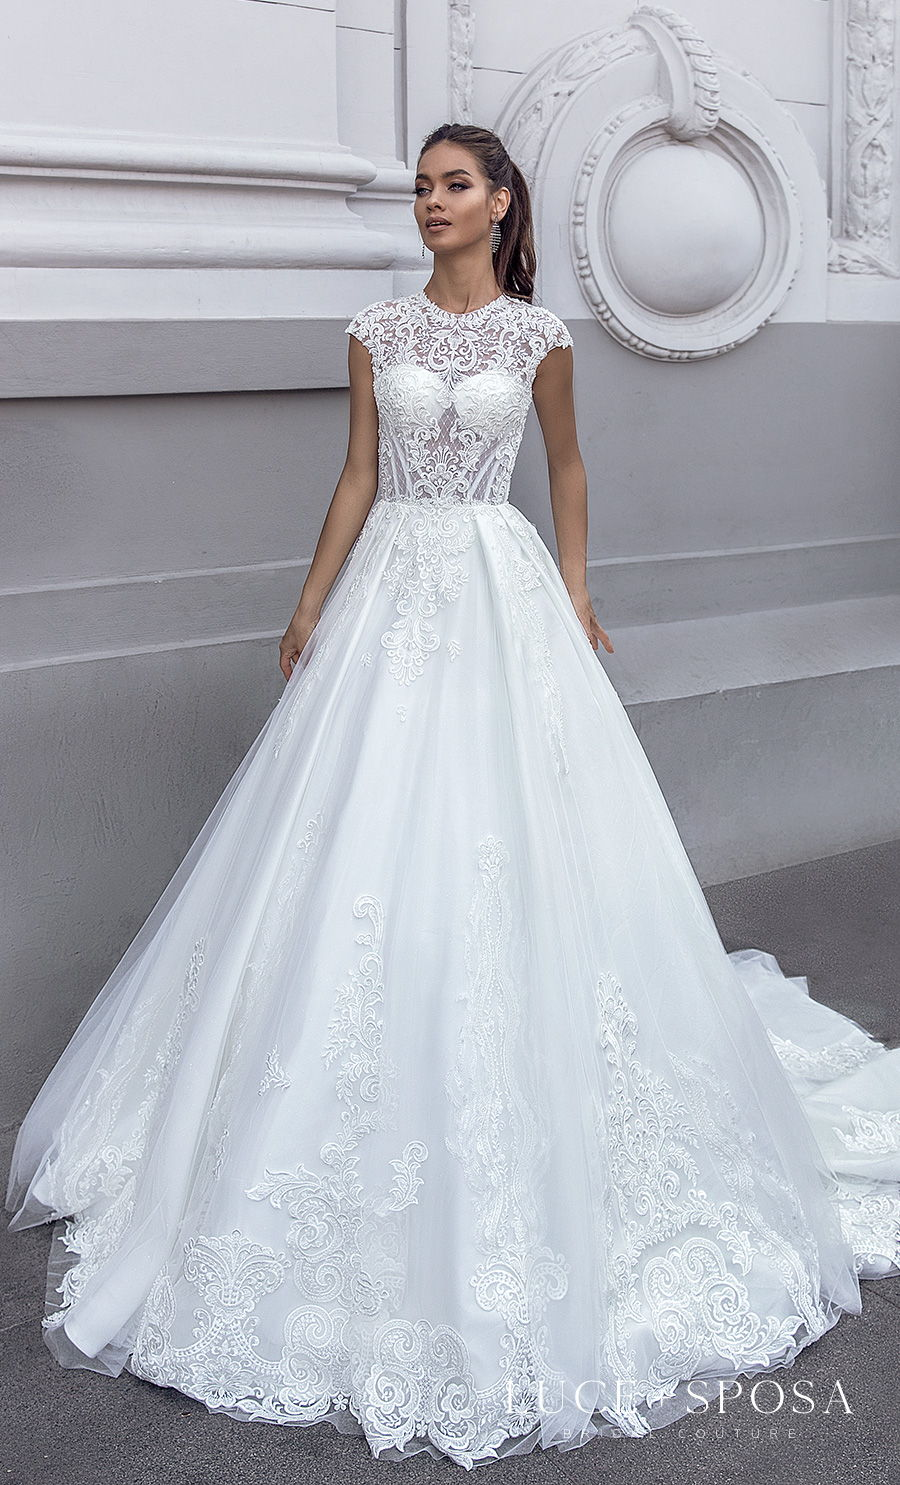 luce sposa s2021 istanbul bridal cap sleeves jewel neckline heavily embellished bodice romantic a  line wedding dress covered lace back chapel train (guslina) mv